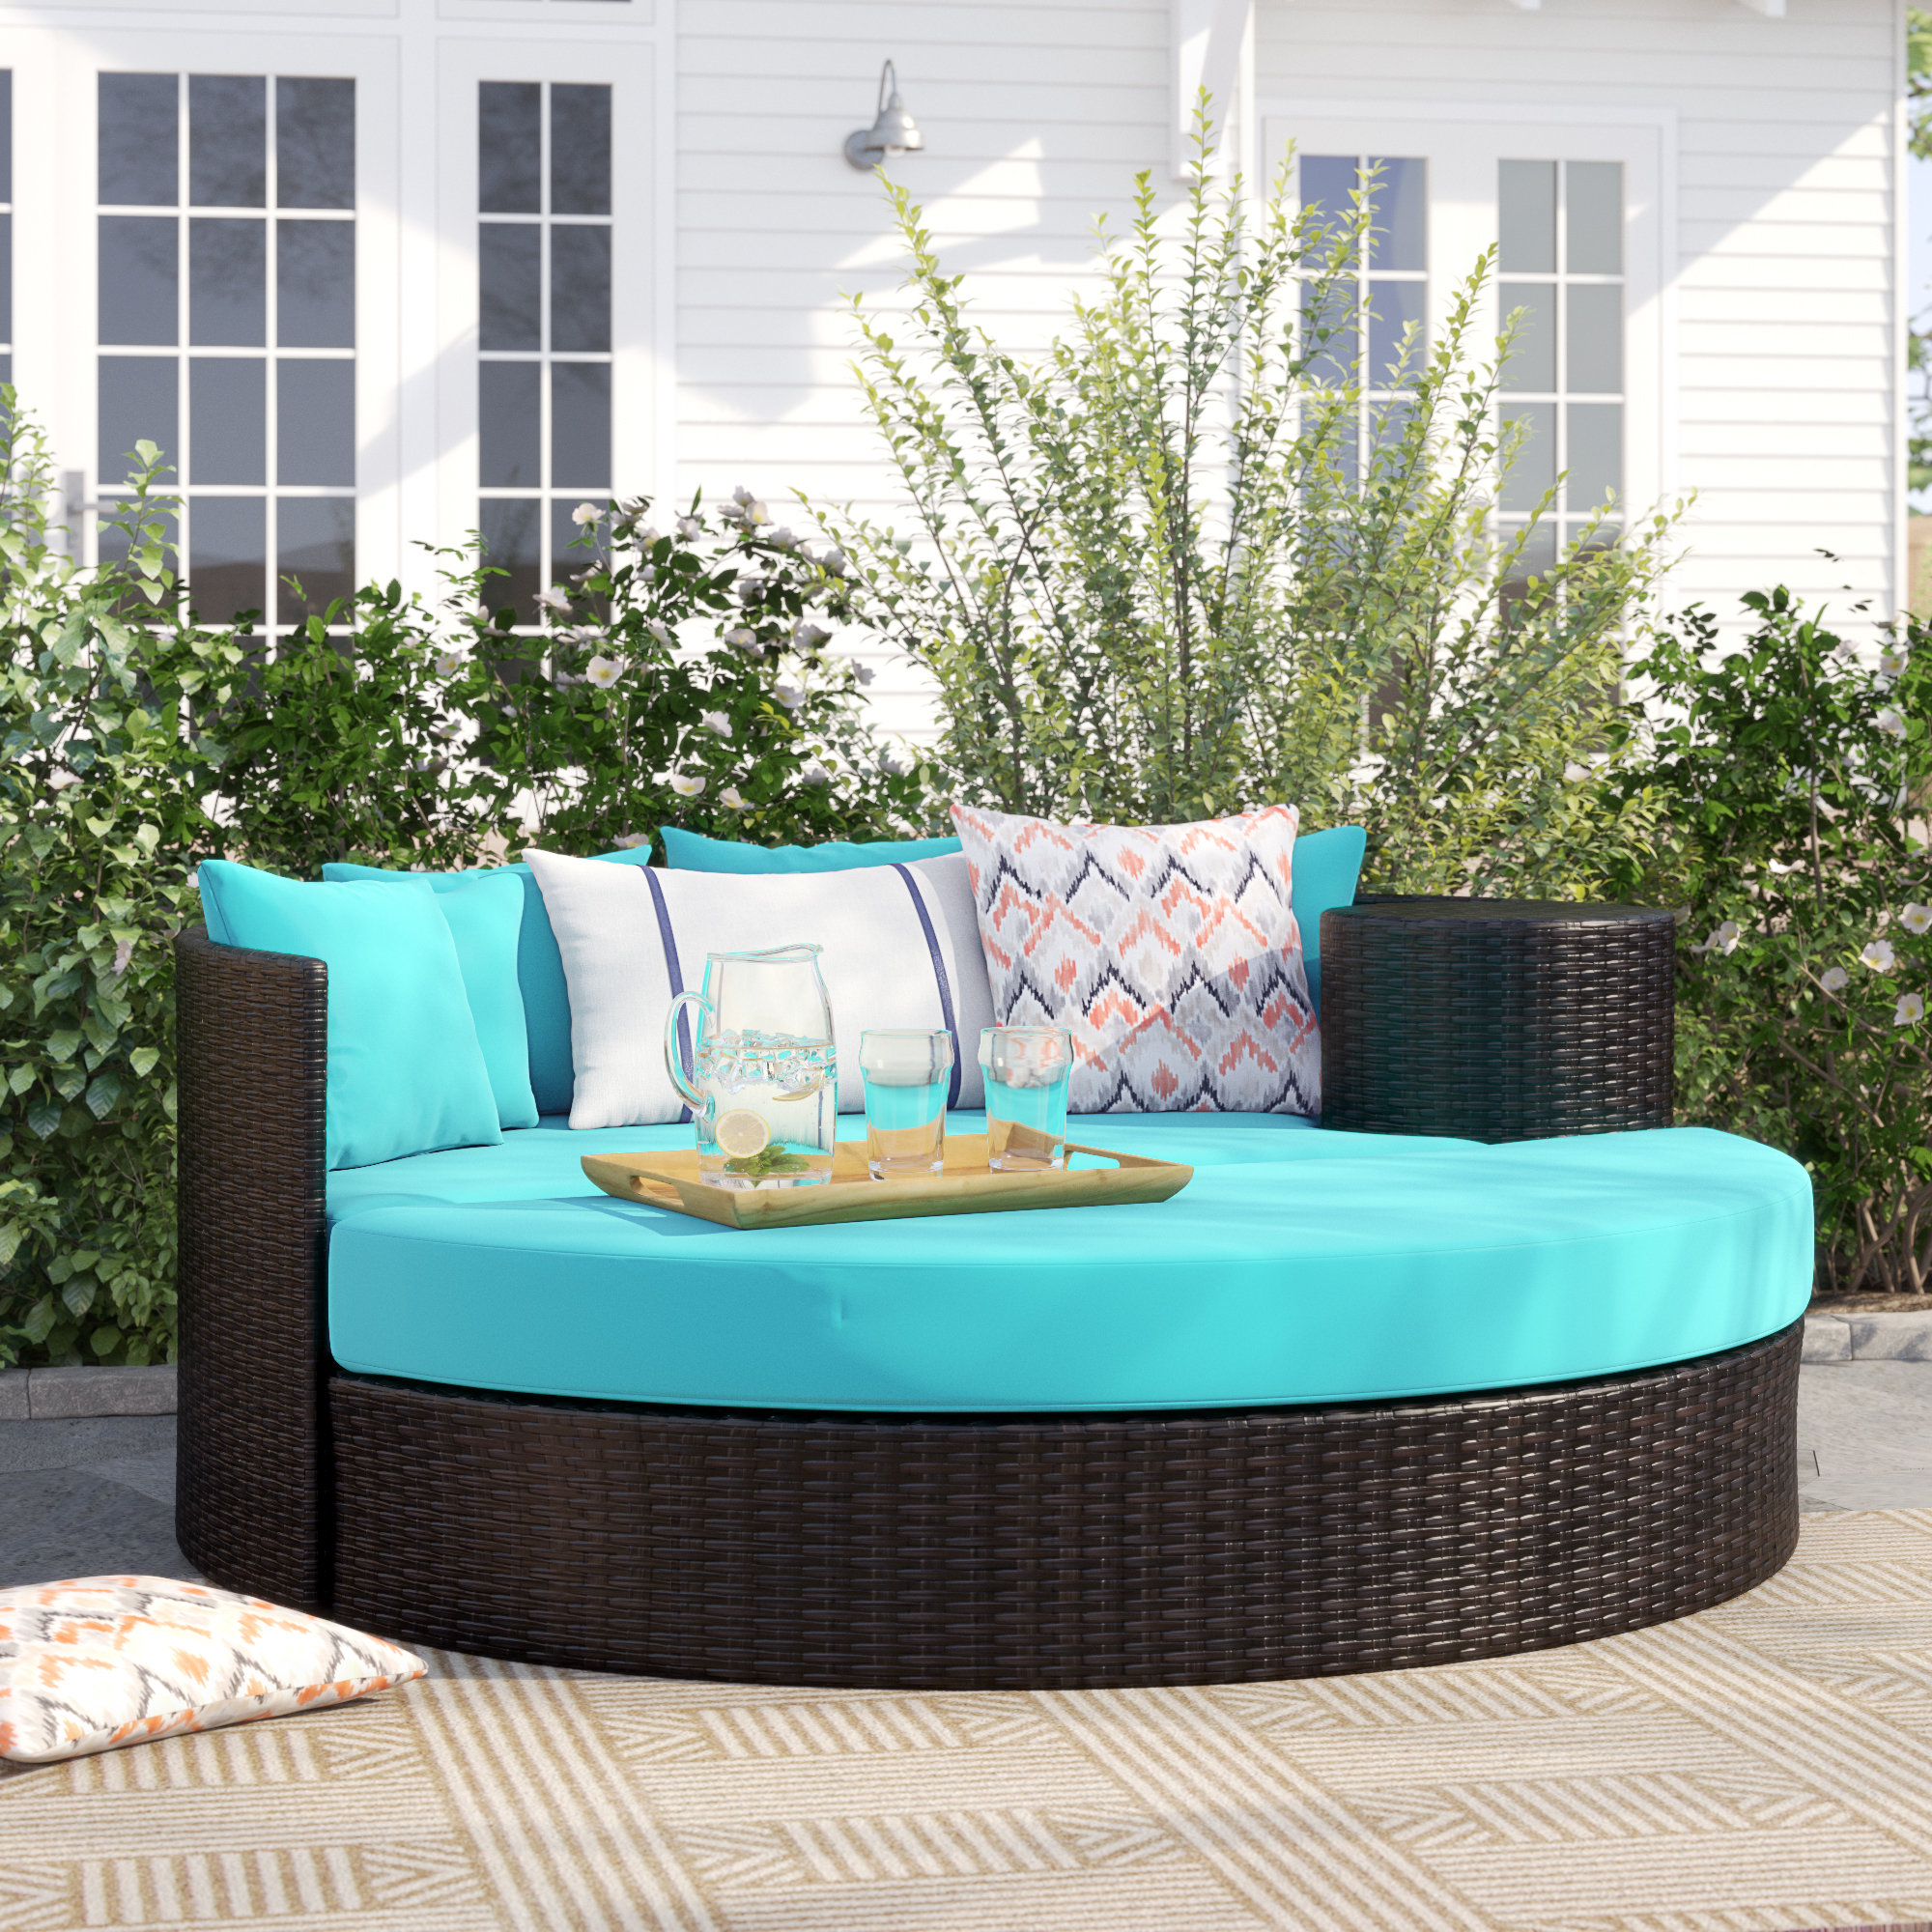 Lavina Outdoor Patio Daybeds With Cushions Within Recent Sol 72 Outdoor Freeport Patio Daybed With Cushion & Reviews (View 14 of 20)